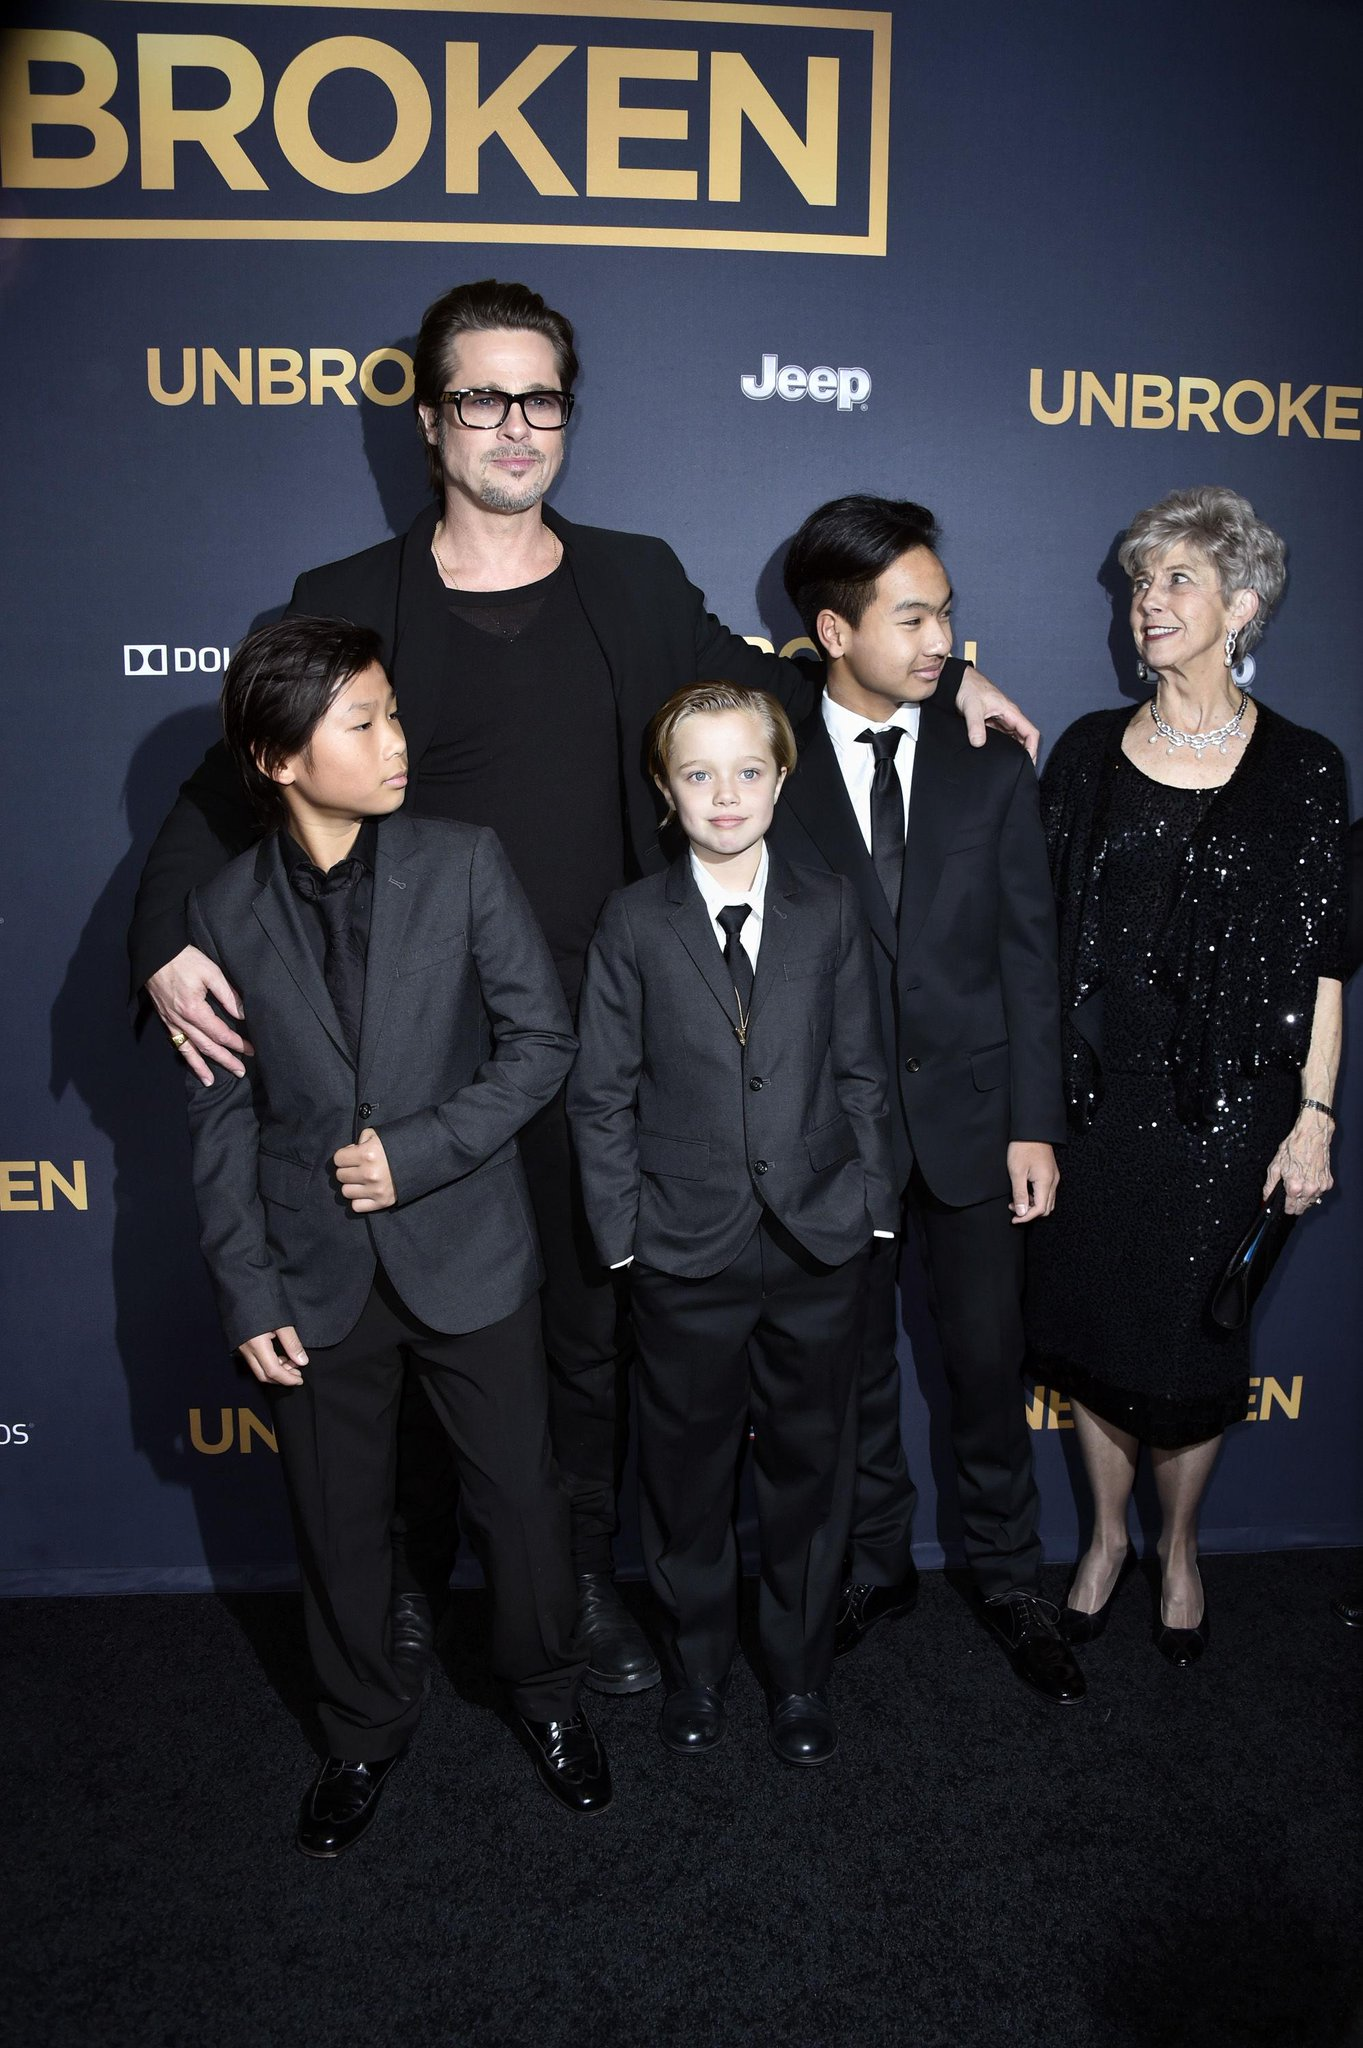 Shiloh Jolie-Pitt is really cute in her suit and tie: http://t.co/JehgQDeRI5 http://t.co/pUhz11eeQk